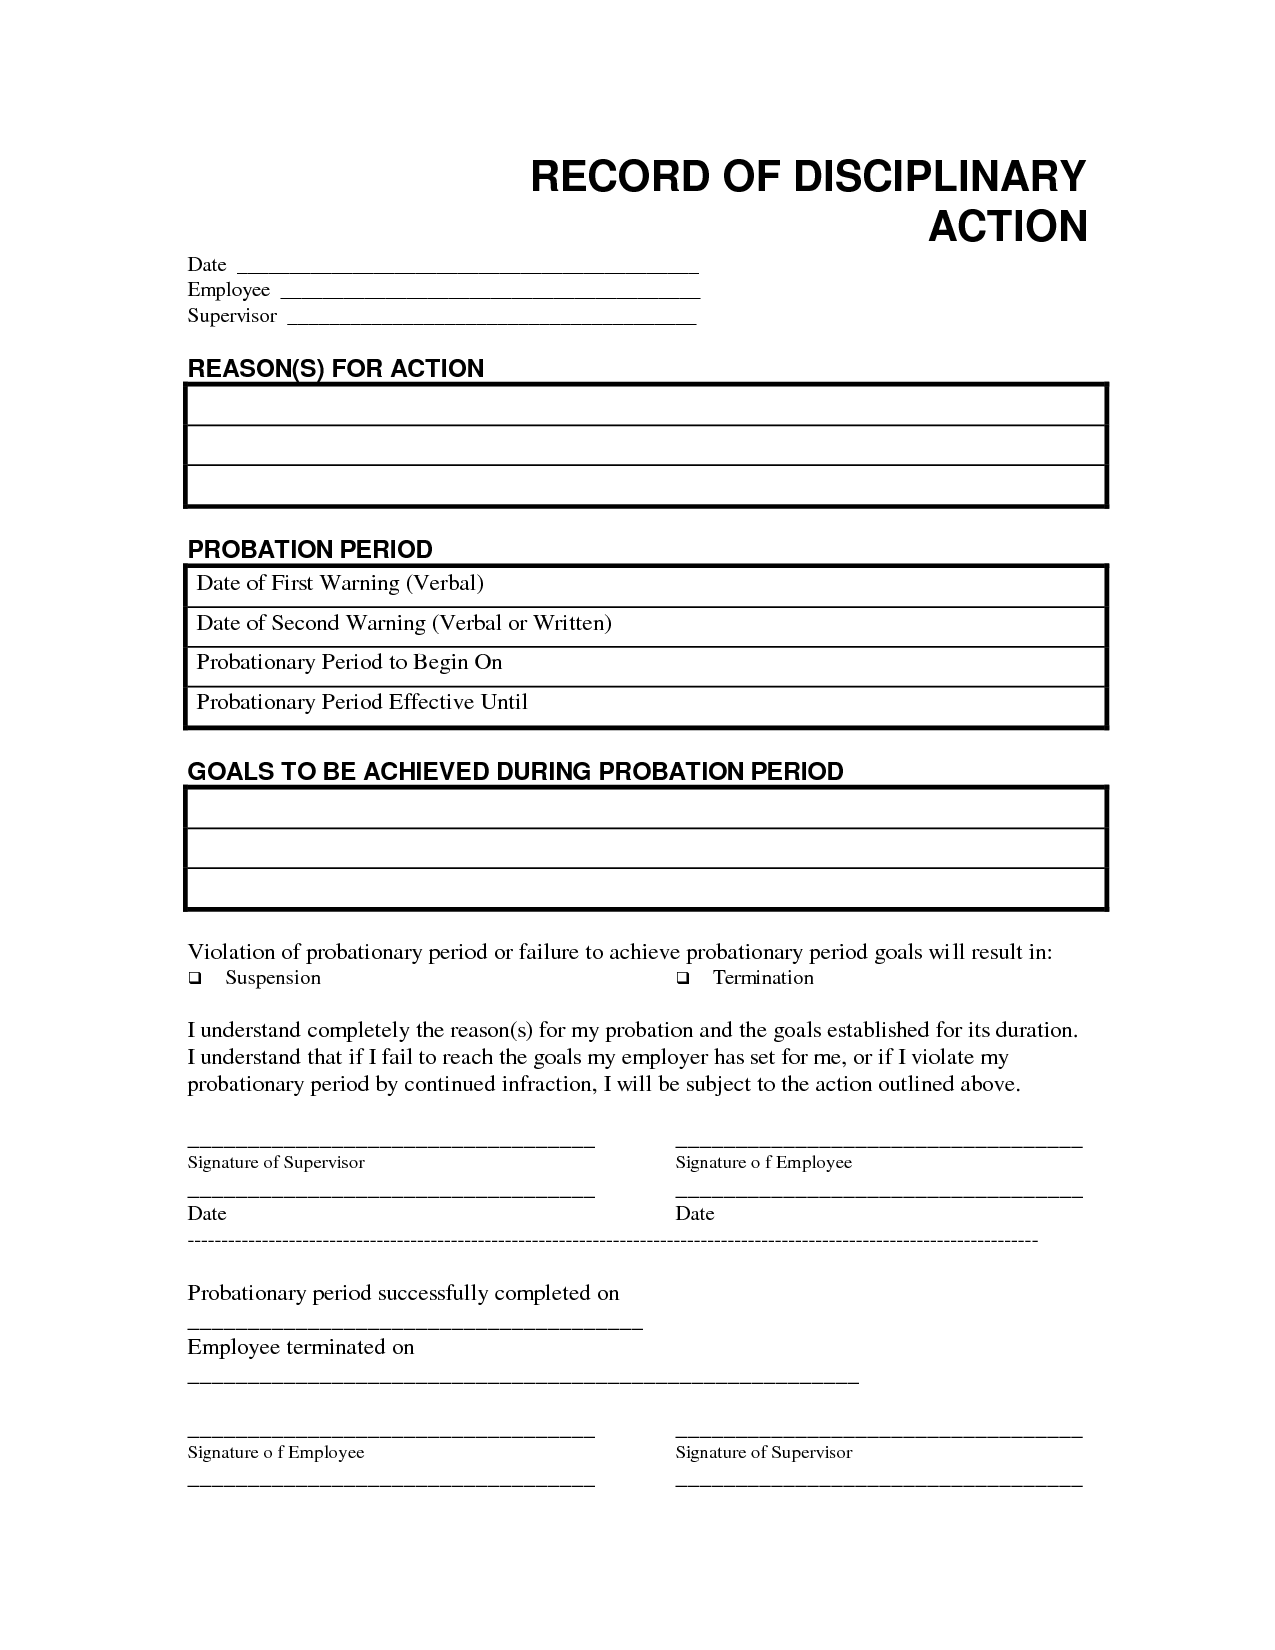 Employers can use this disciplinary action form to file a – Disciplinary Action Form